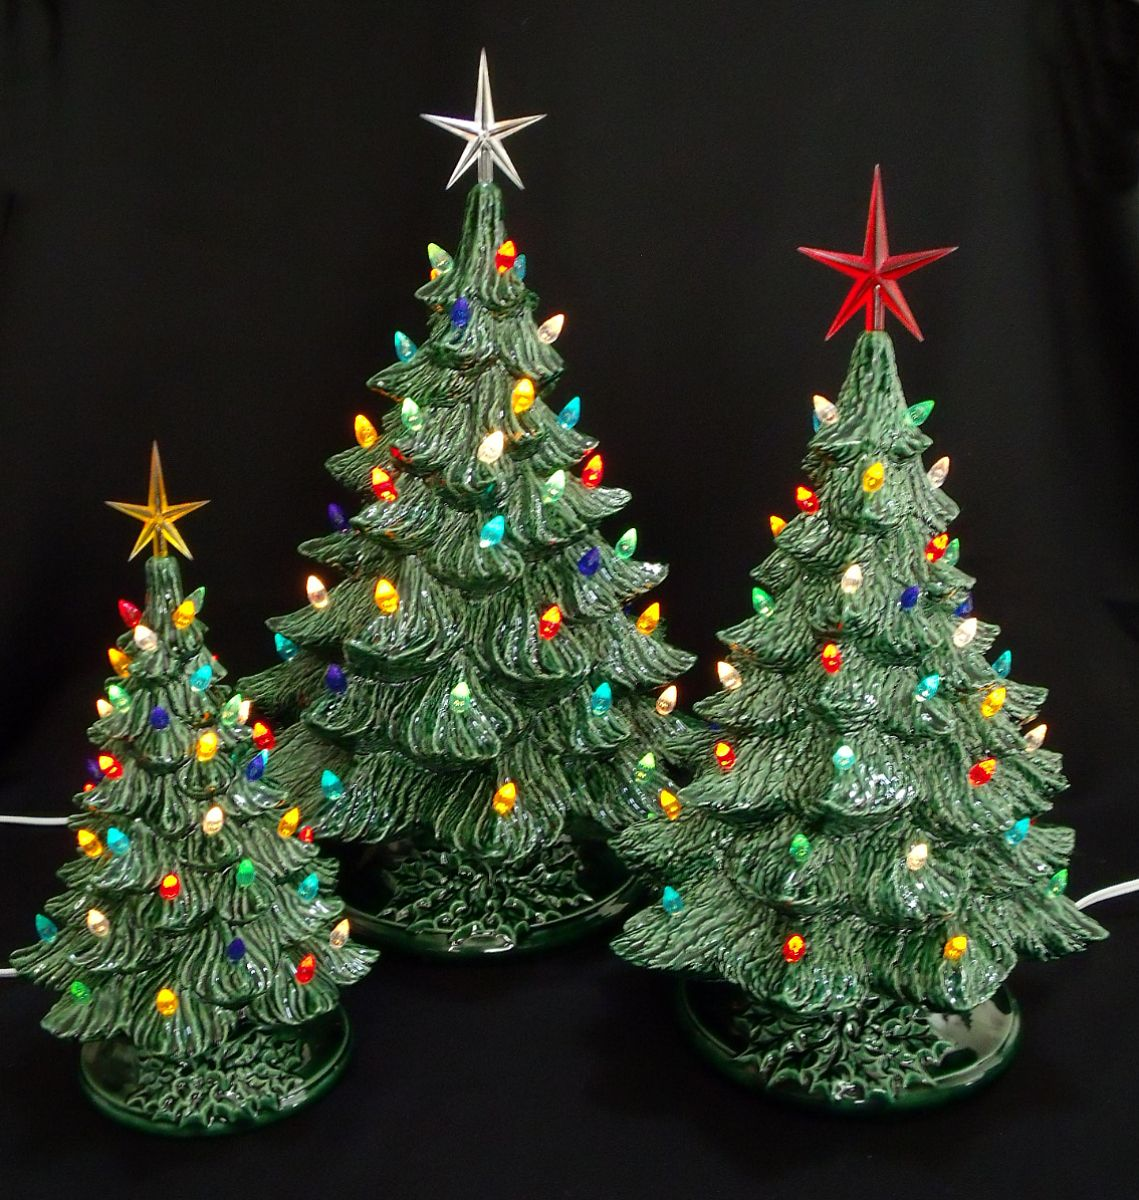 Ceramic christmas ornaments - I Have Two Friends Who Have This Kind Of Old Fashioned Ceramic Christmas Tree